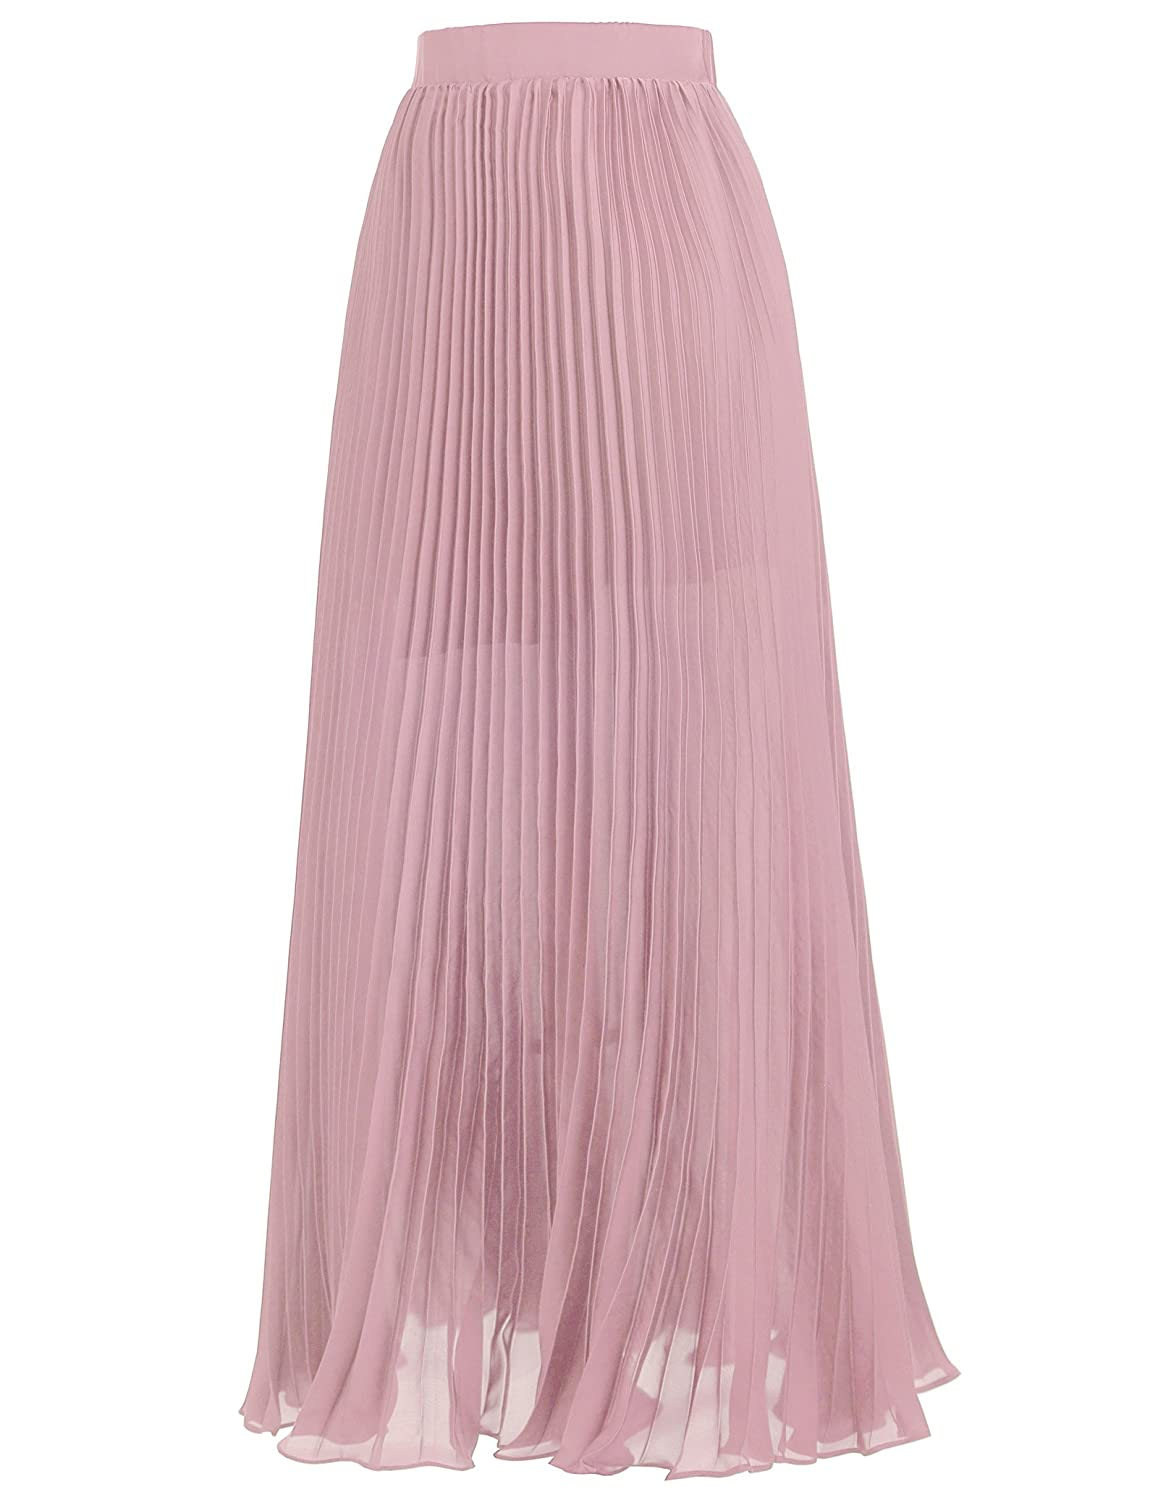 6250be60f63e Kate Kasin Women Ankle Length Pink Pleated Skirts for Bridal Shower Size S  KK614-2 at Amazon Women's Clothing store: